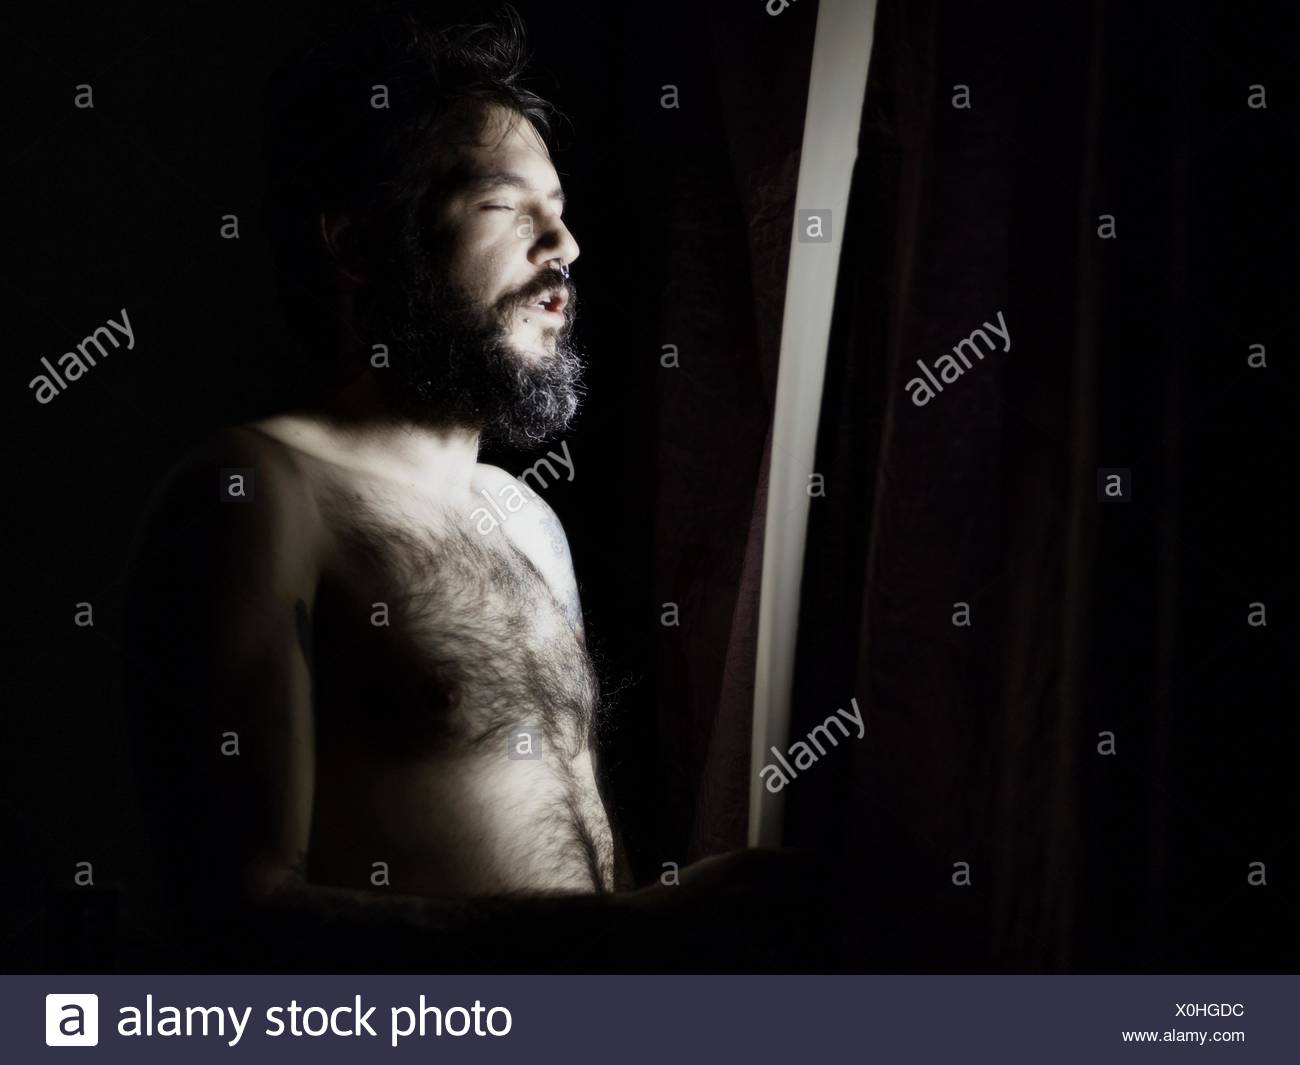 Man Standing At Window With Eyes Closed - Stock Image